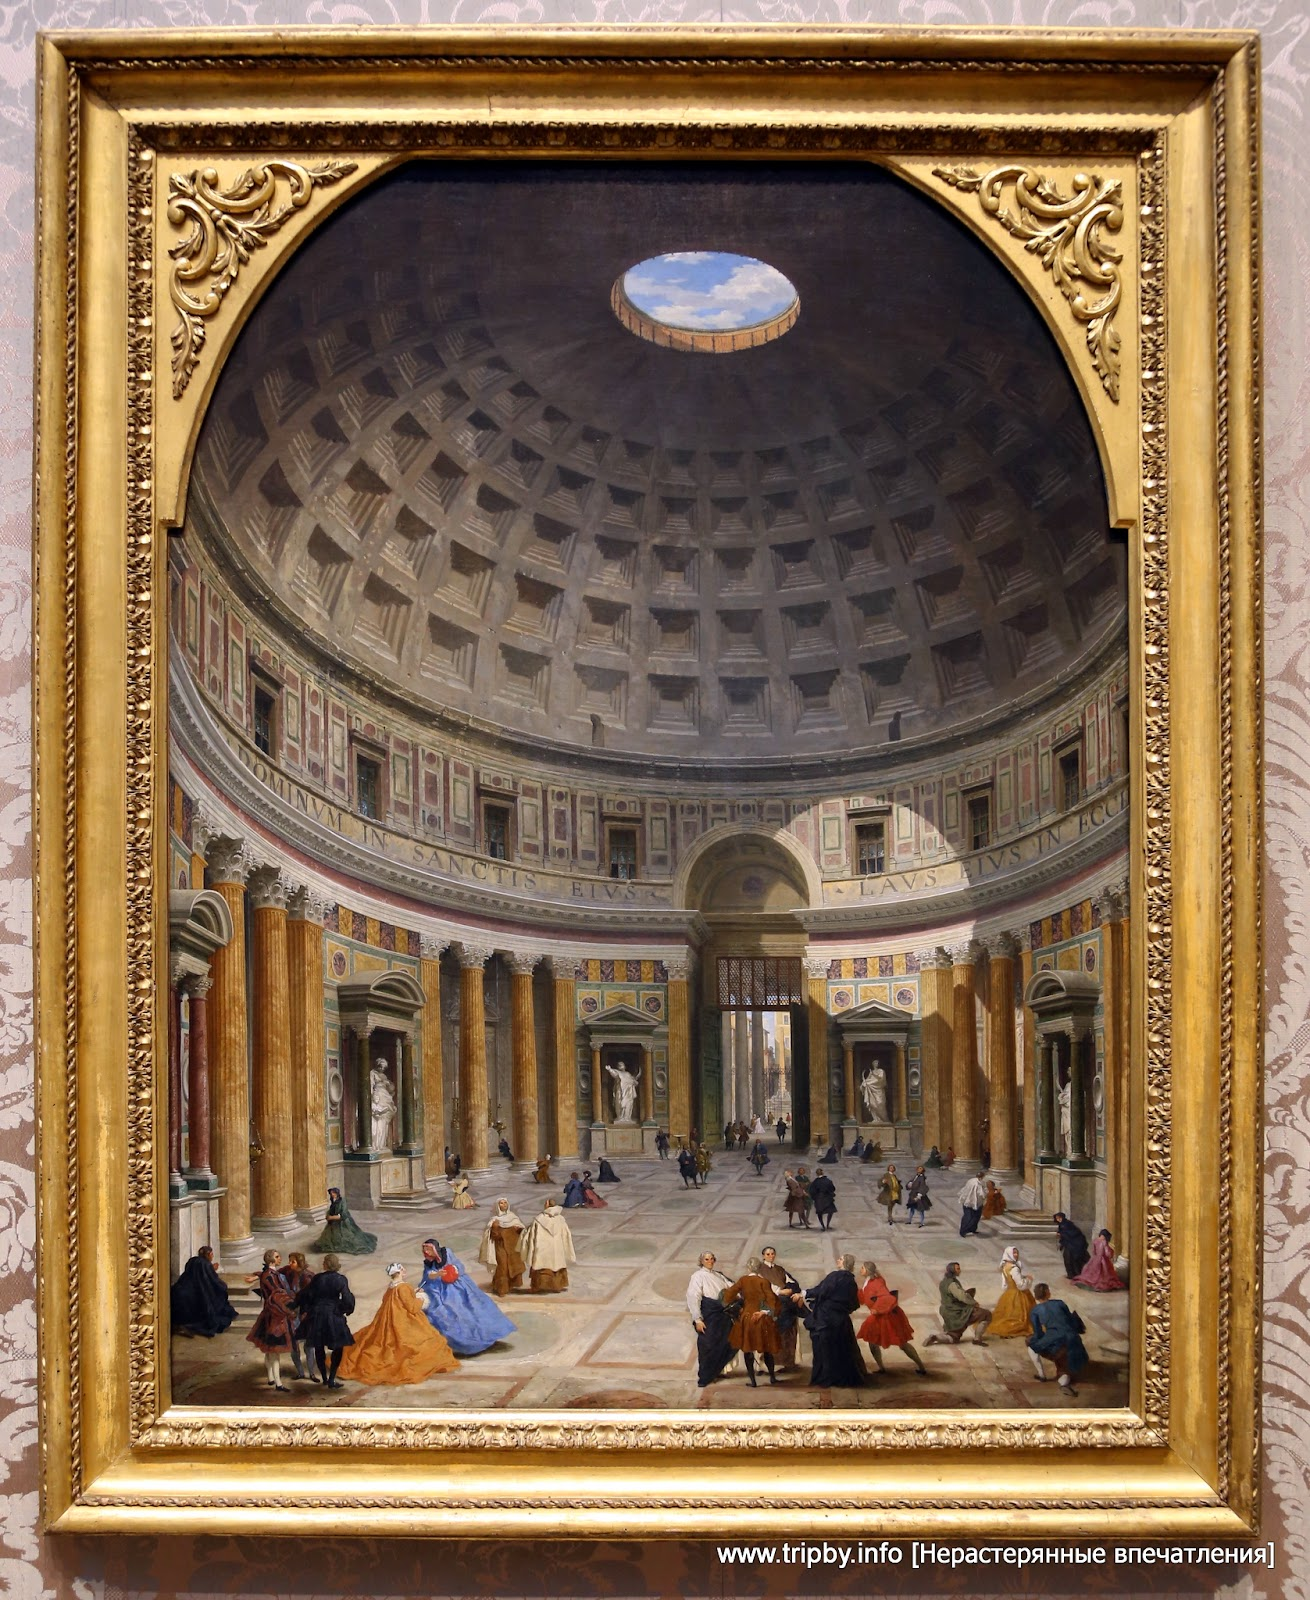 Panini, Giovanni Paolo | Roman, 1691 - 1765 | Interior of the Pantheon, Rome c. 1734